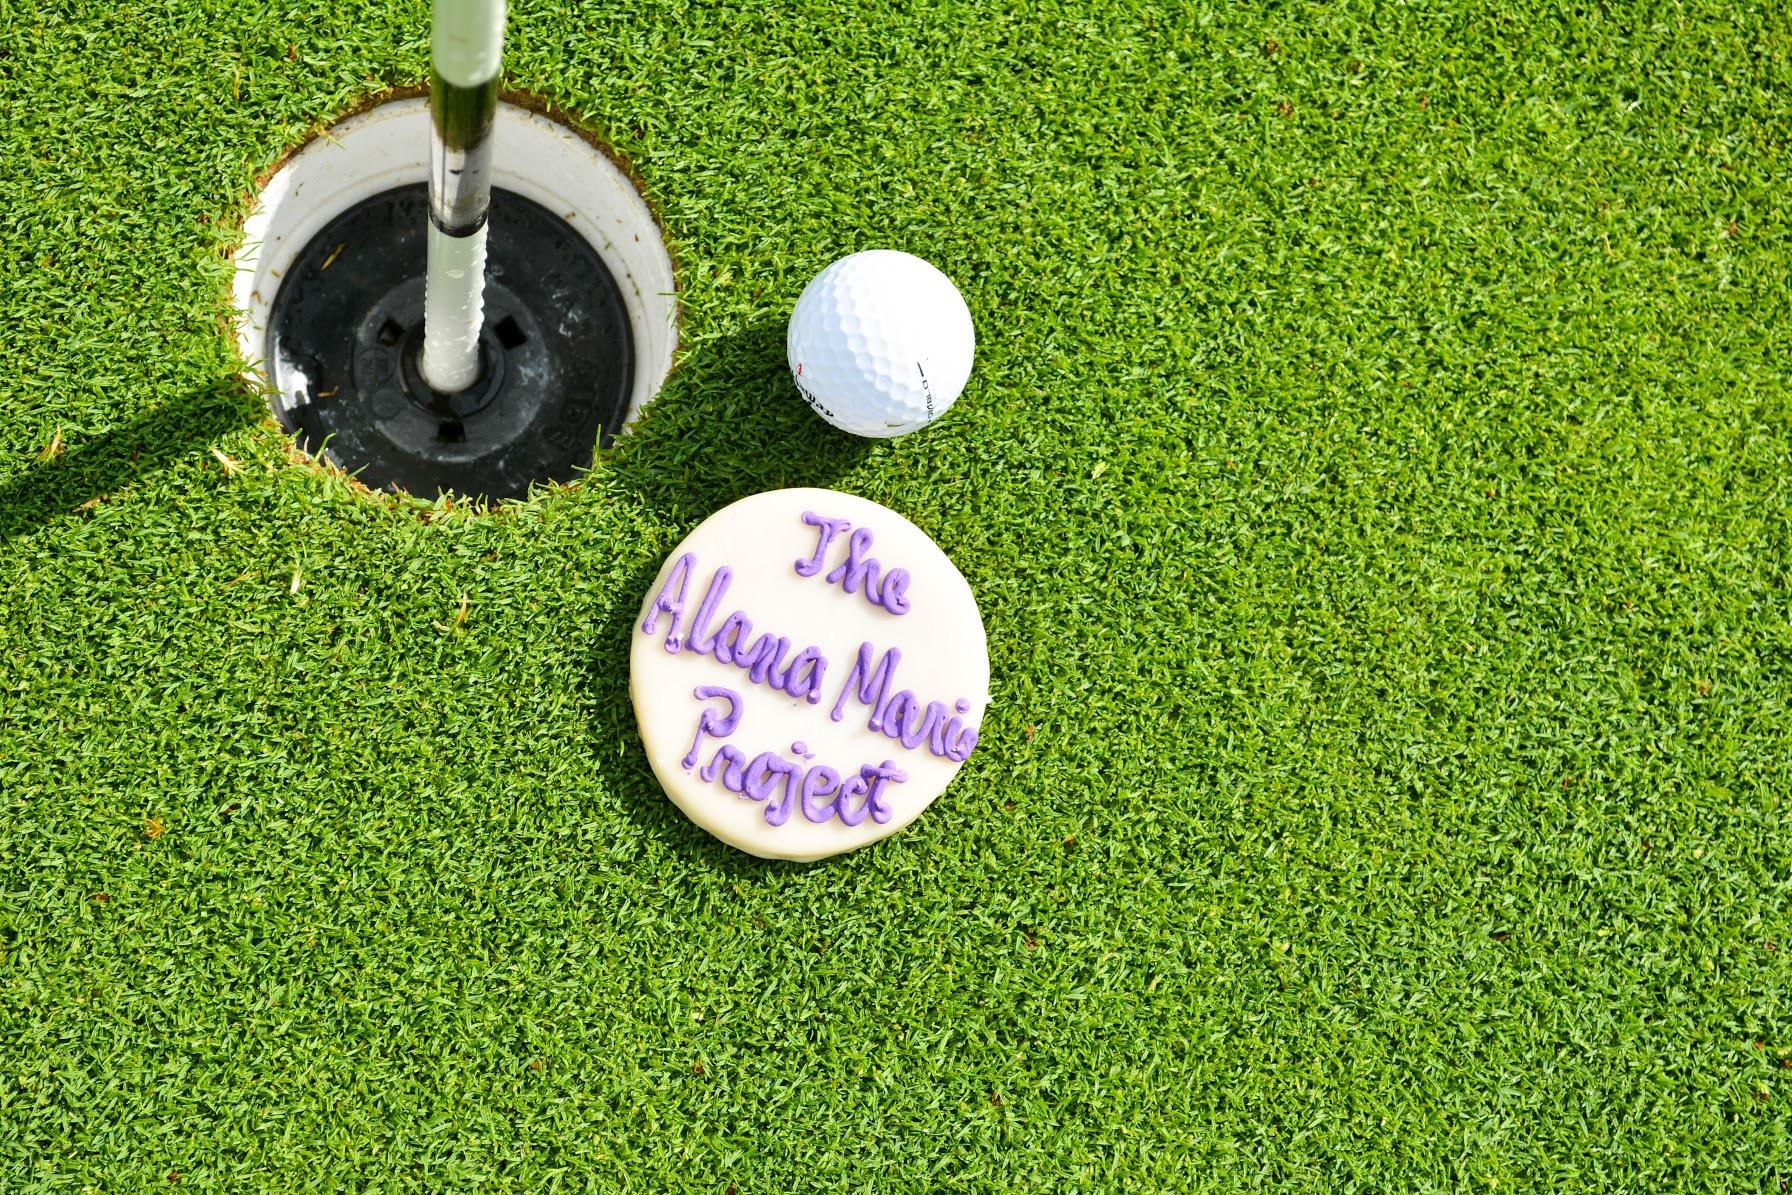 The Alana Marie Project's 3rd Annual Golf Tournament & Dinner